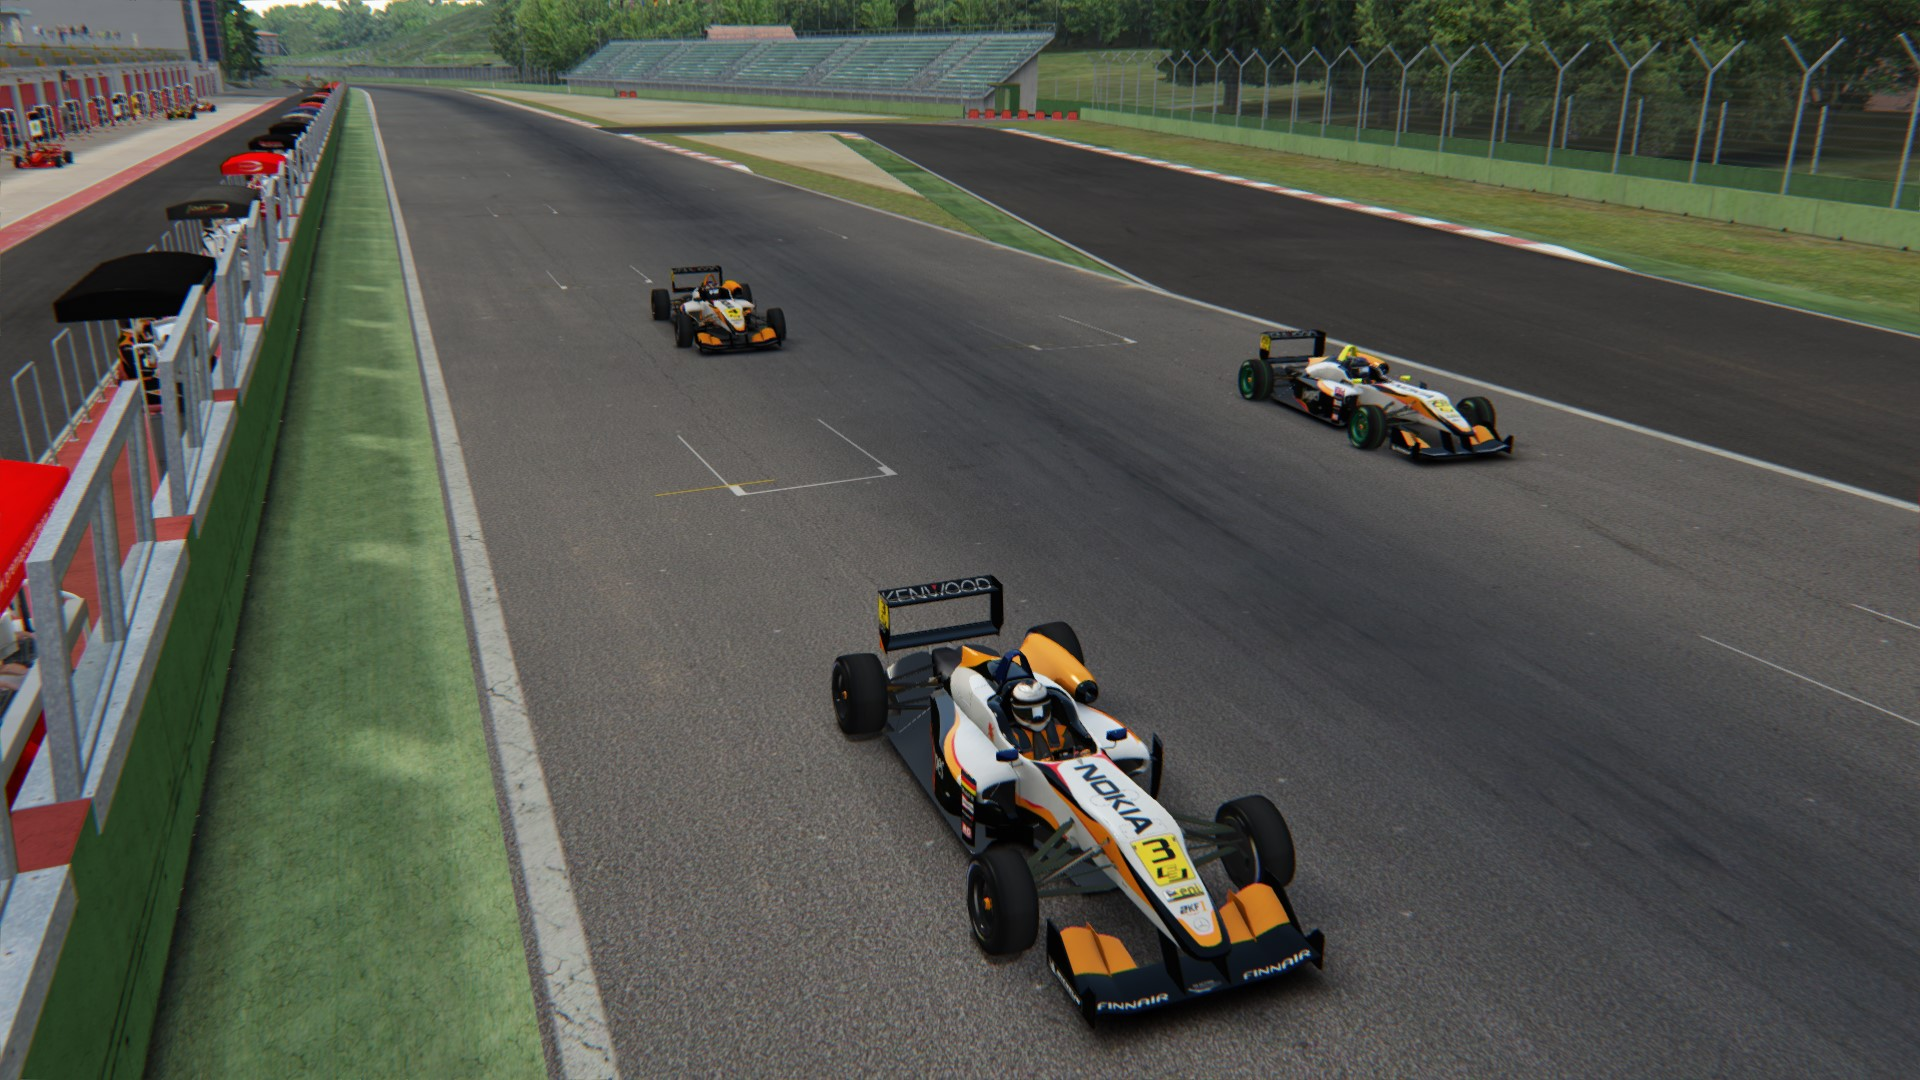 Screenshot_dallara_f312_imola_2-5-116-13-54-12.jpg